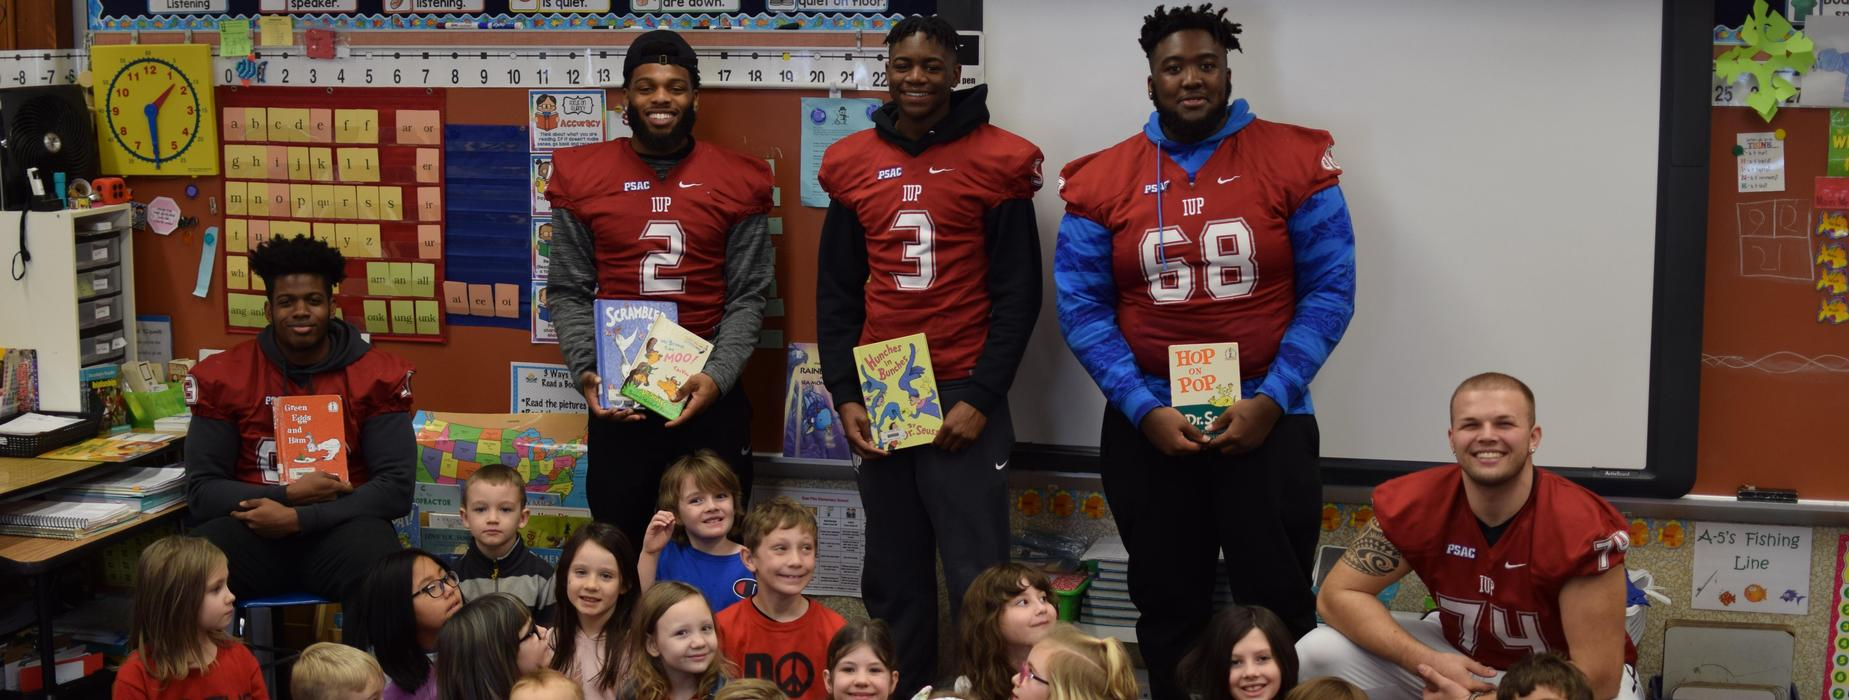 IUP Football Player Readers